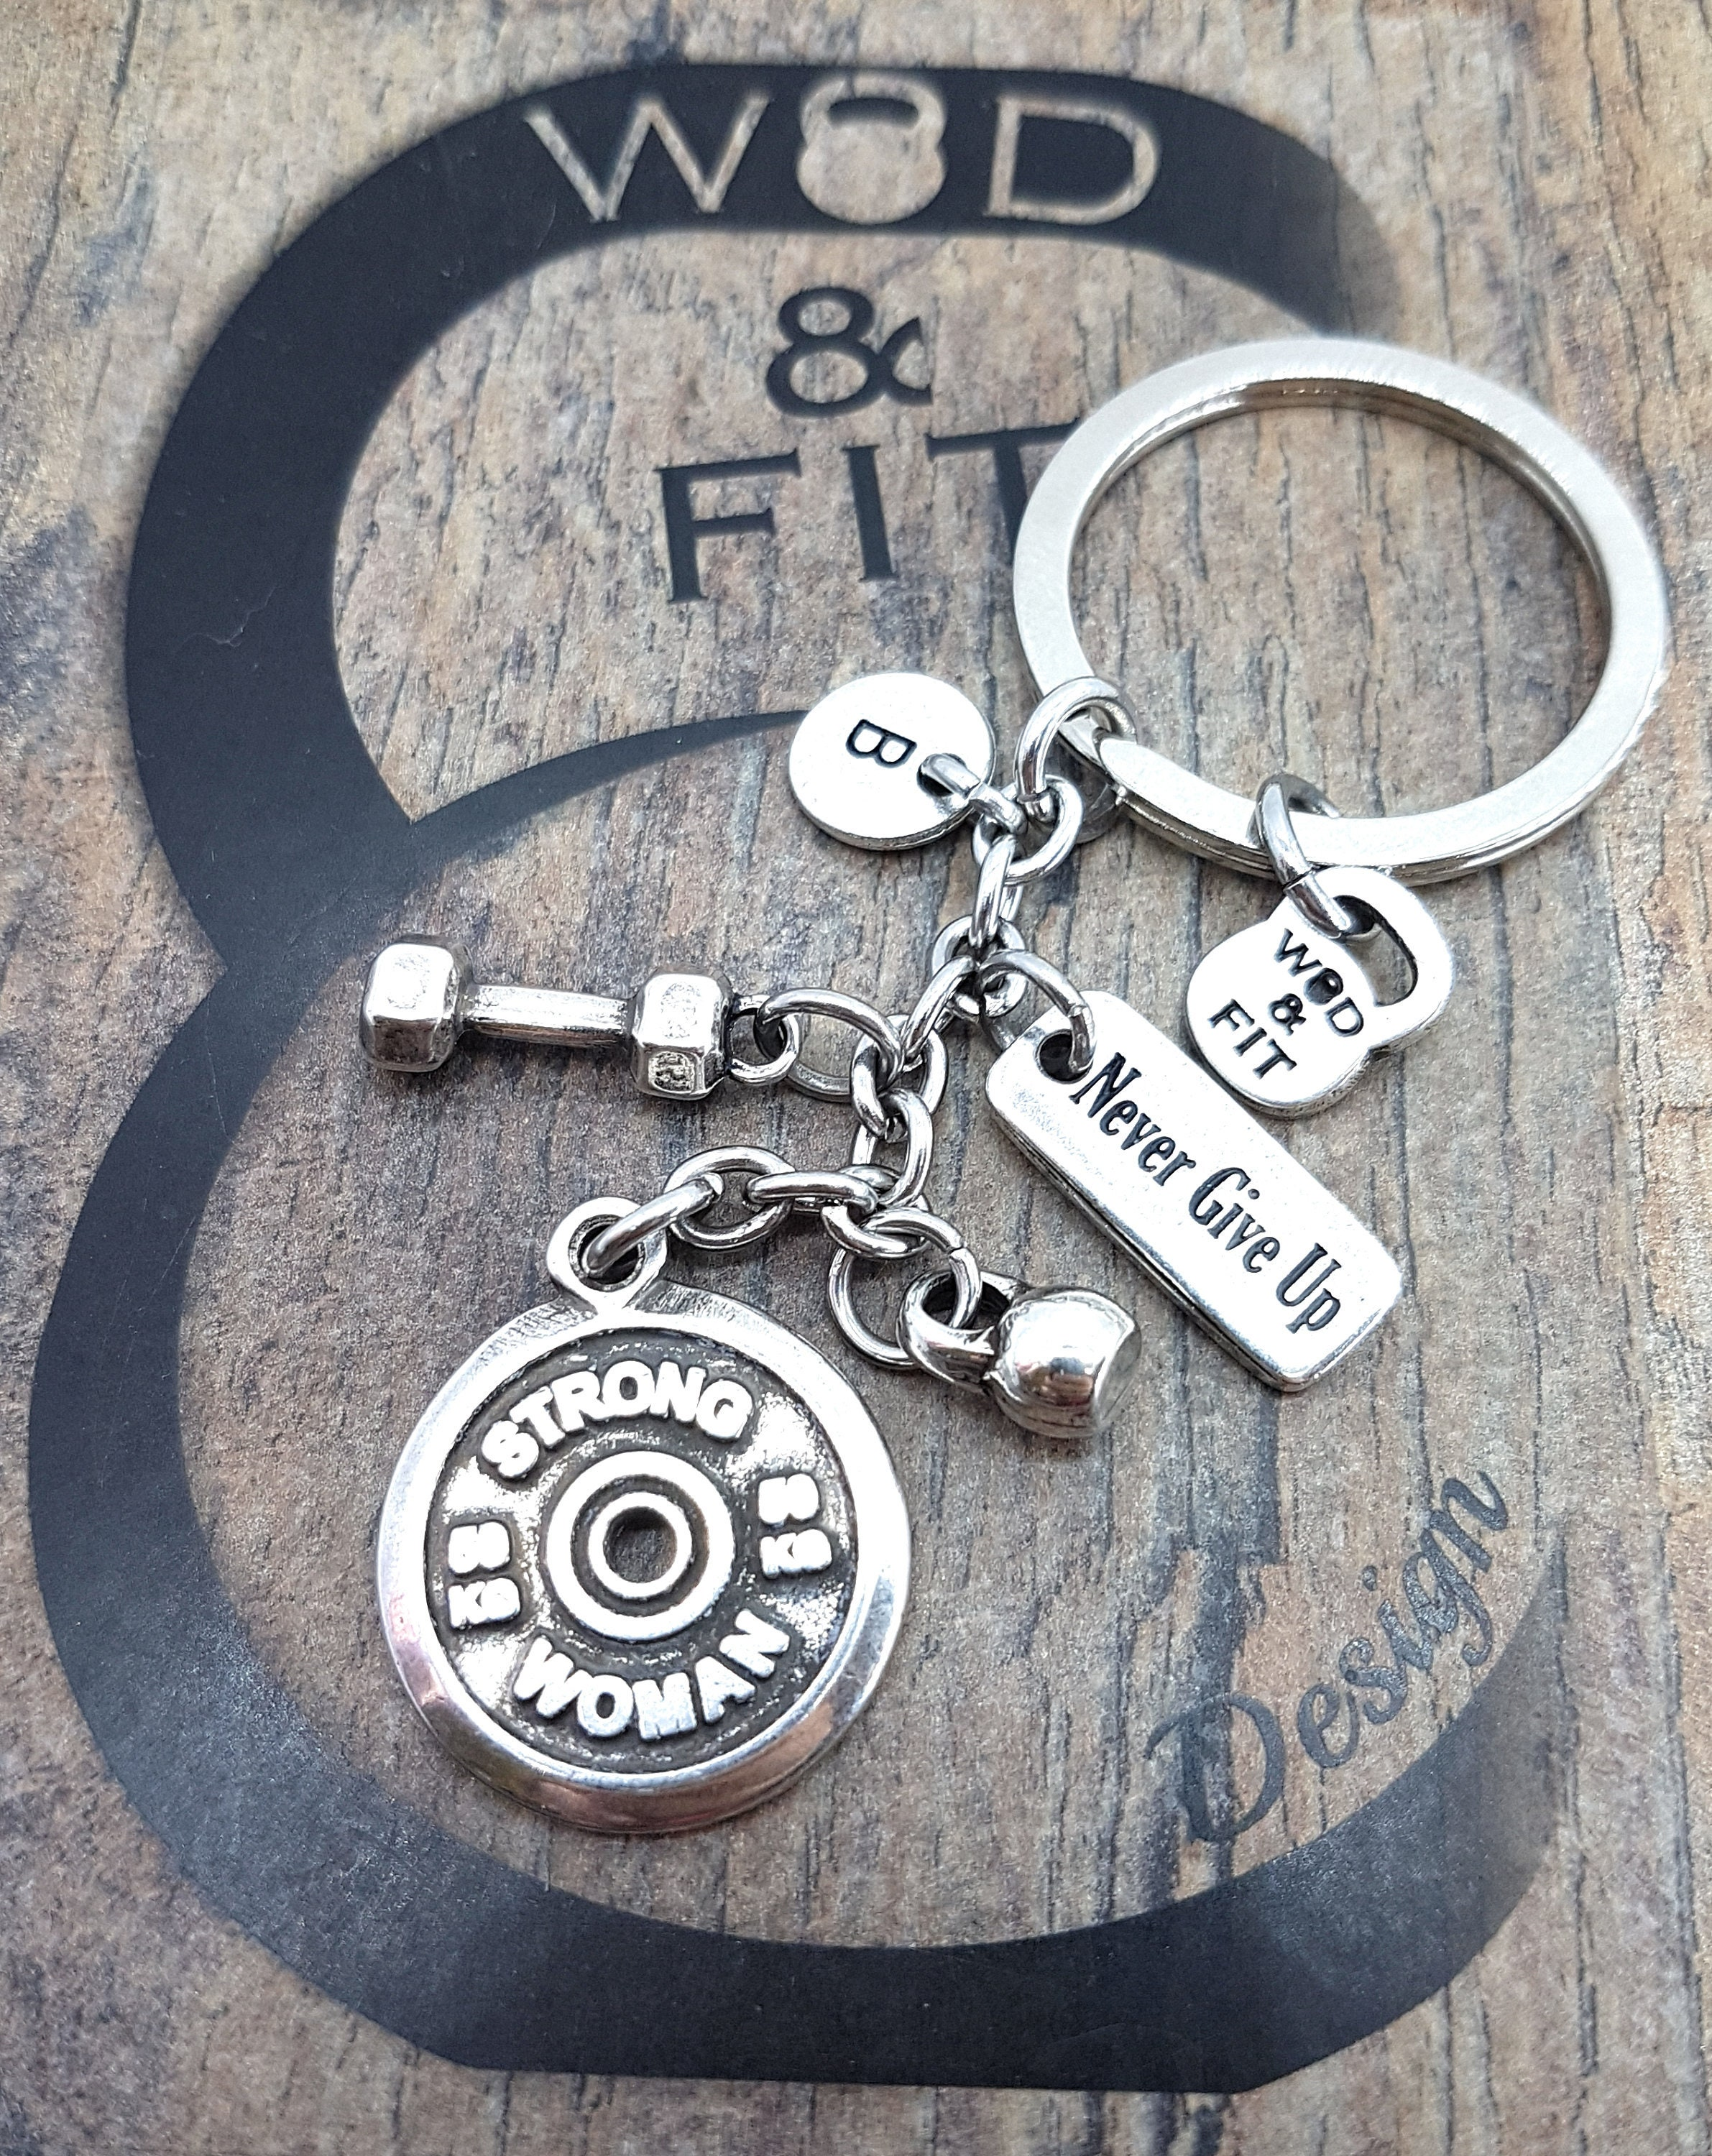 Weight Plate Keychain Fitplate Strong Womandumbbell Motivation